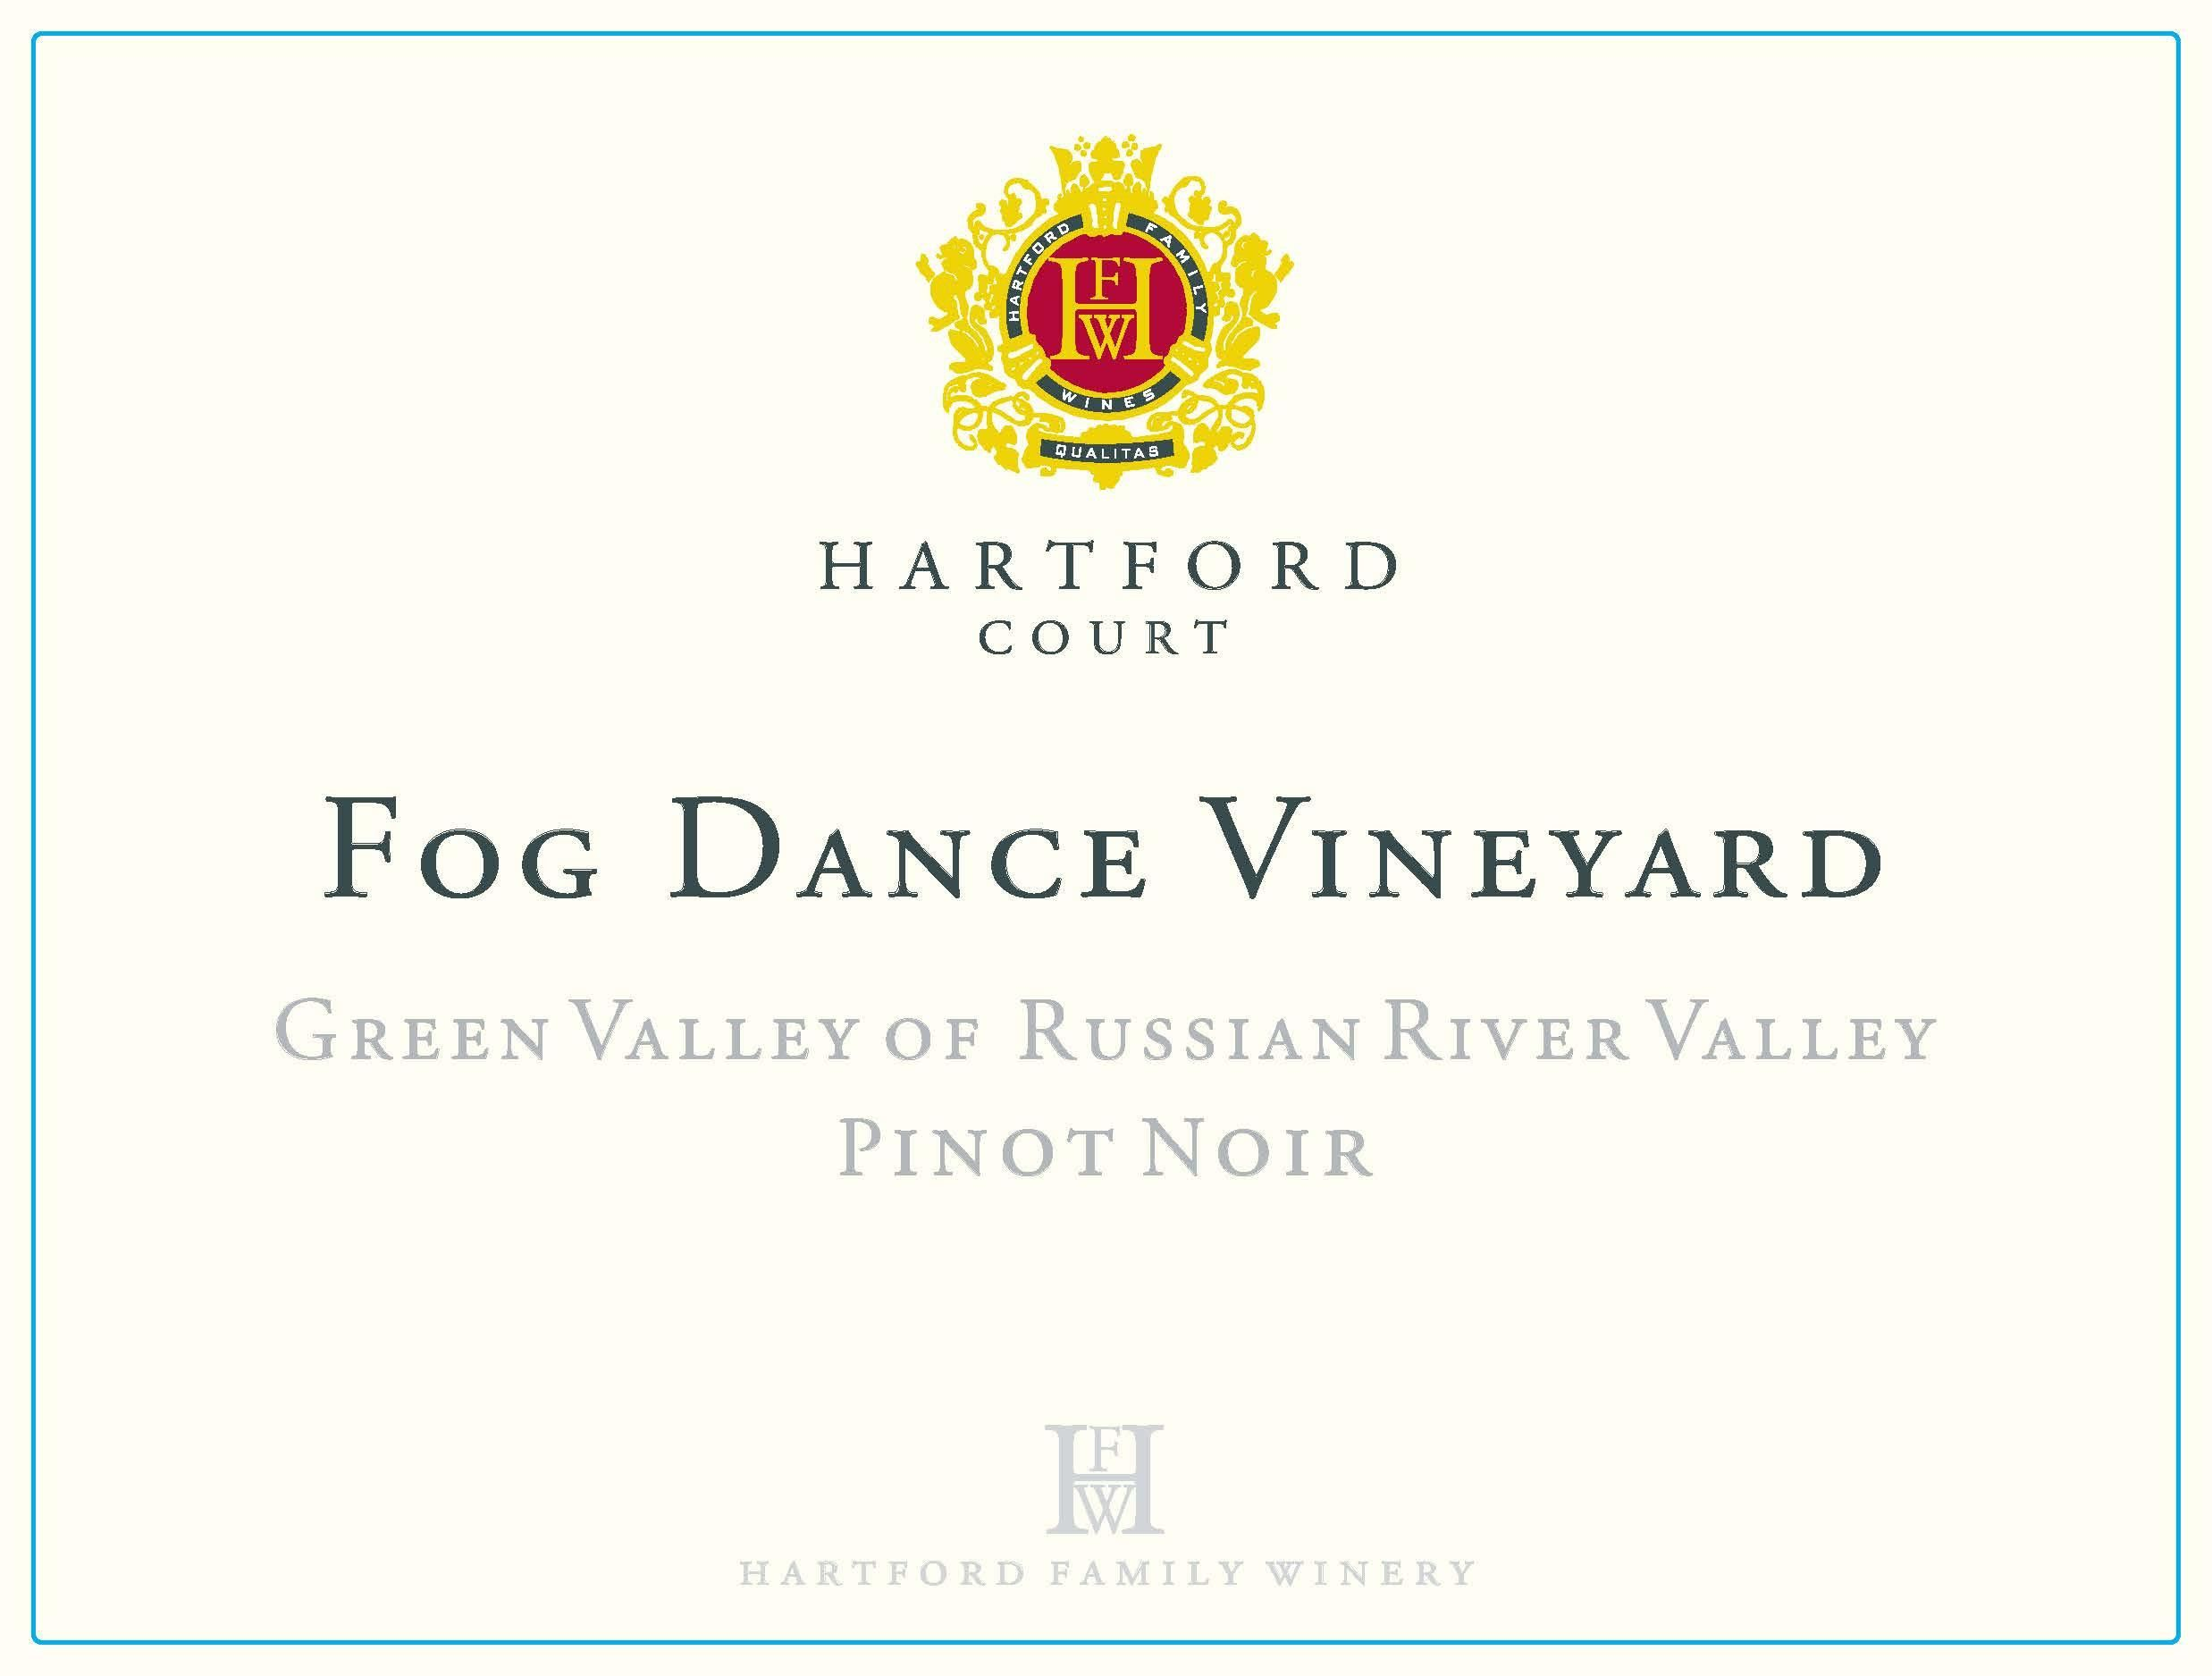 Hartford Court Fog Dance Pinot Noir 2016 Front Label